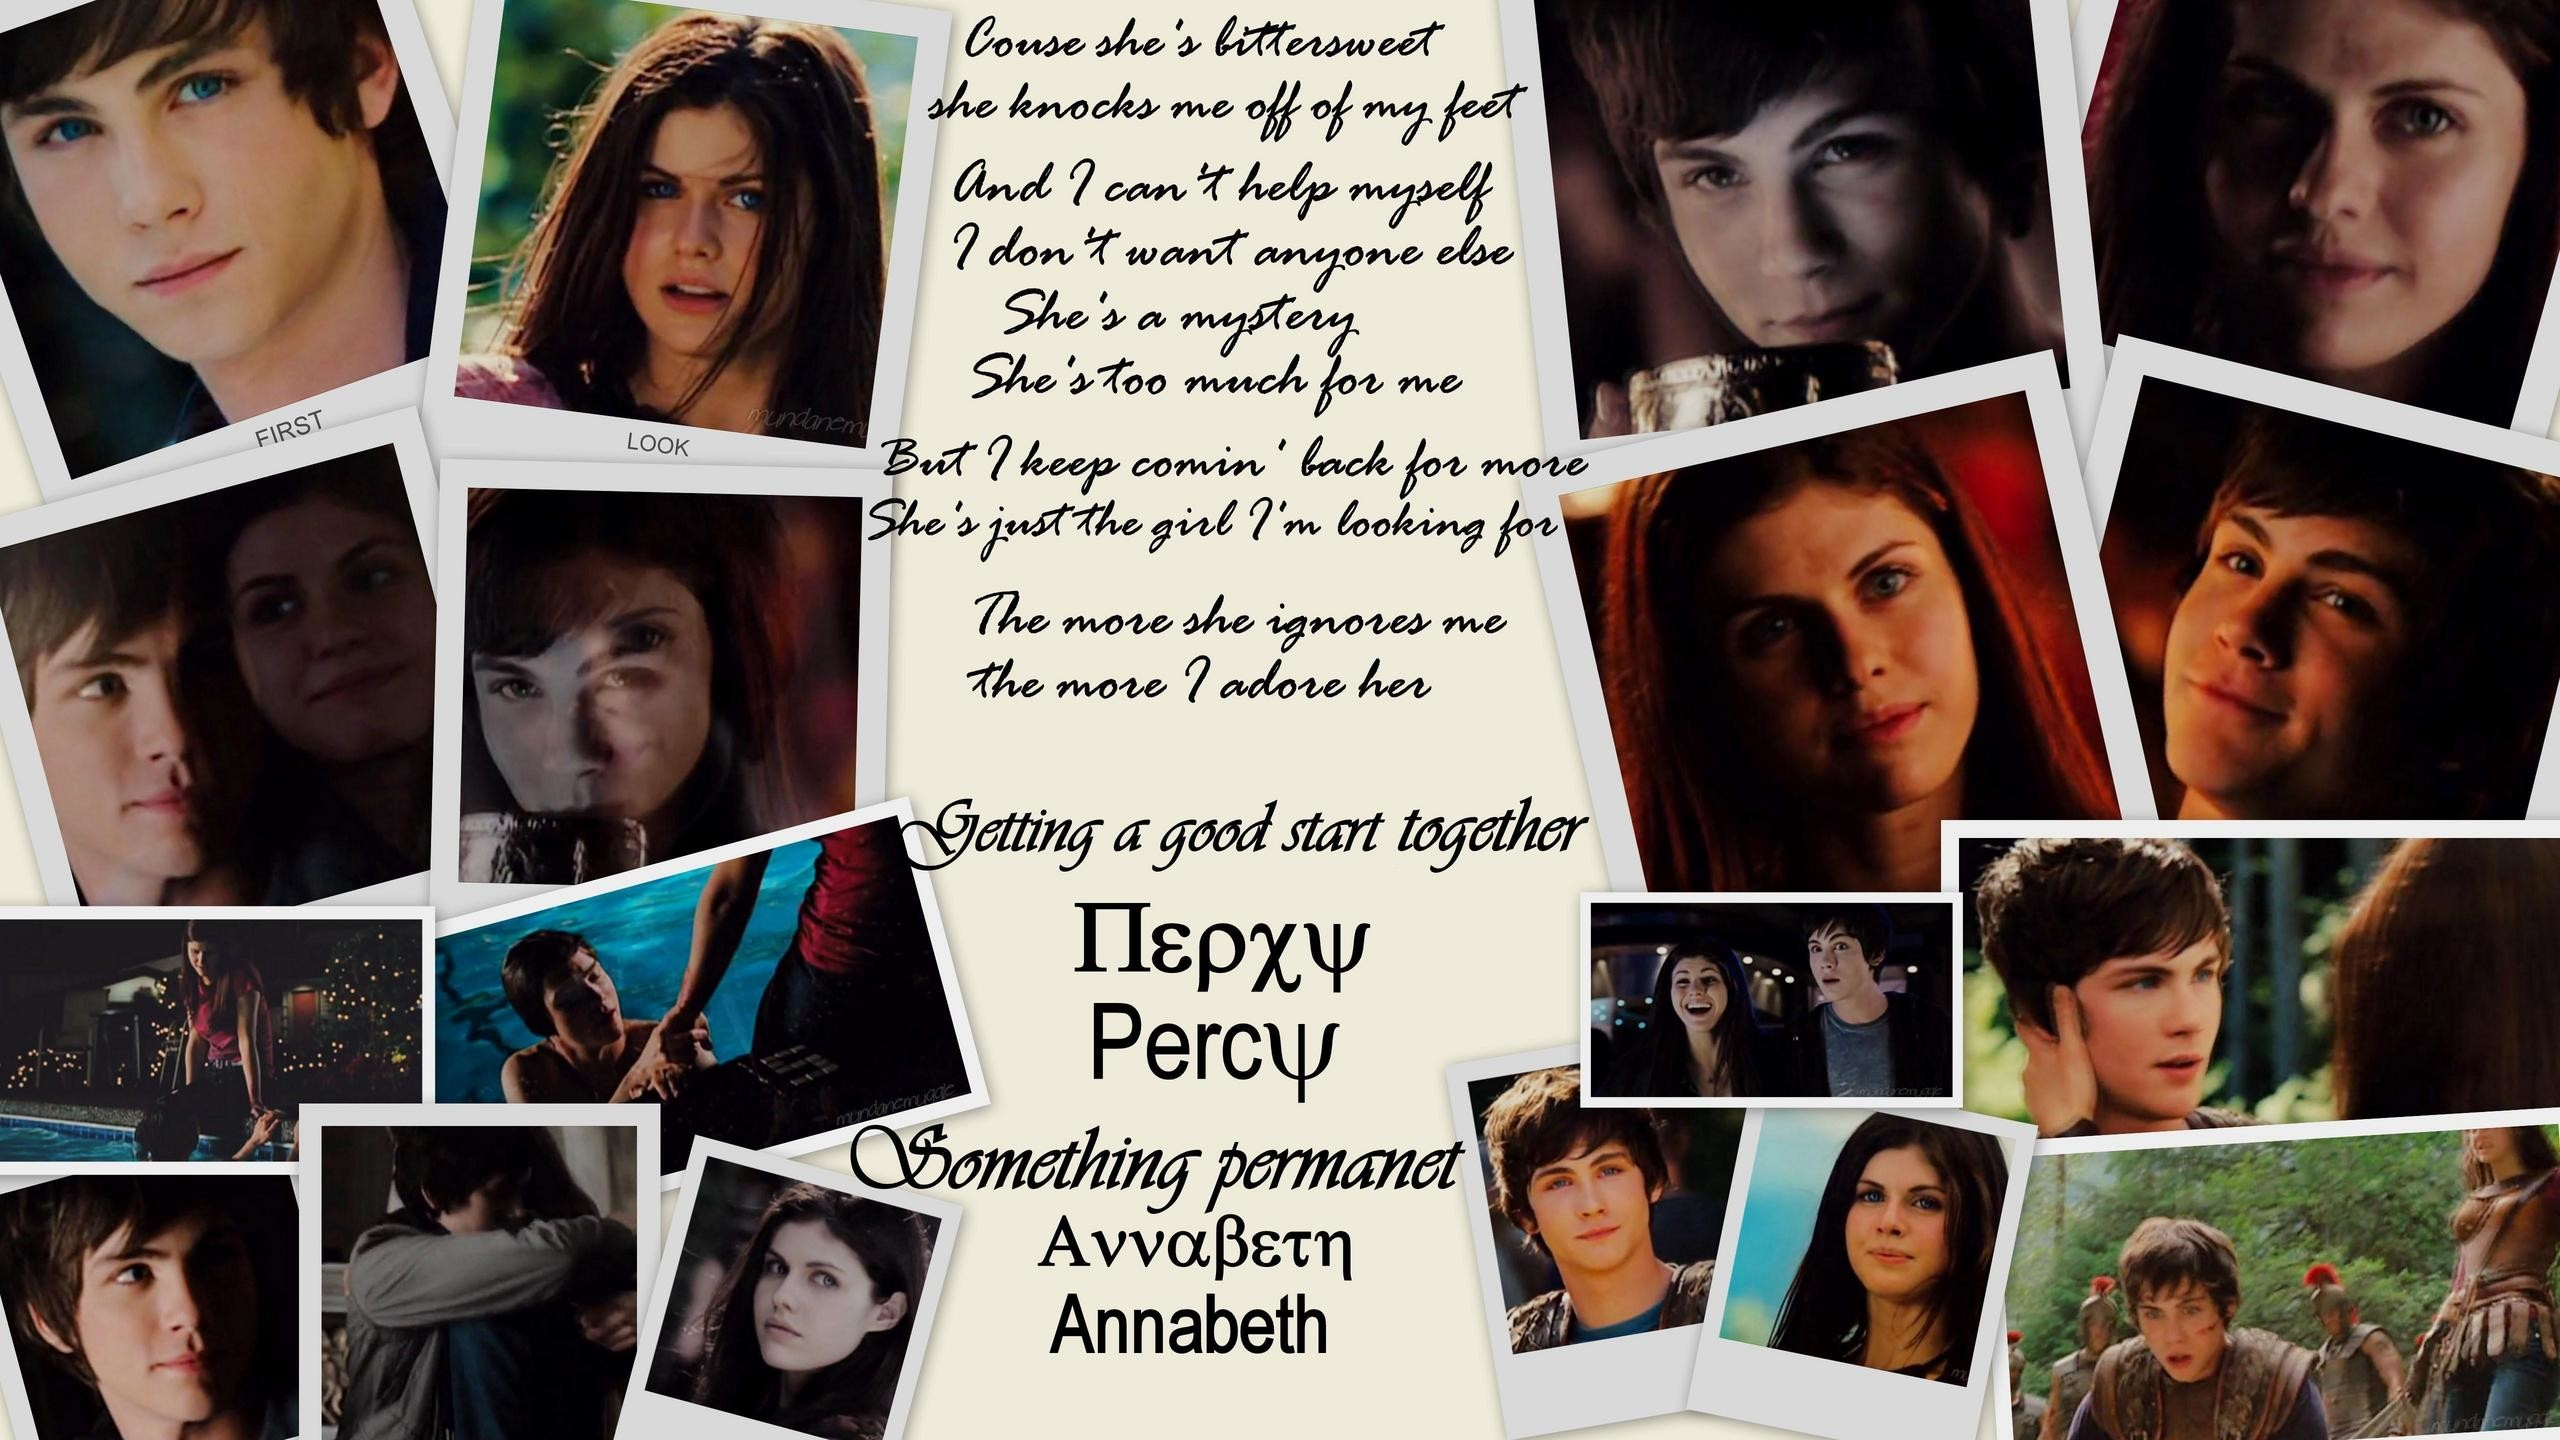 are percy and annabeth dating in the movie